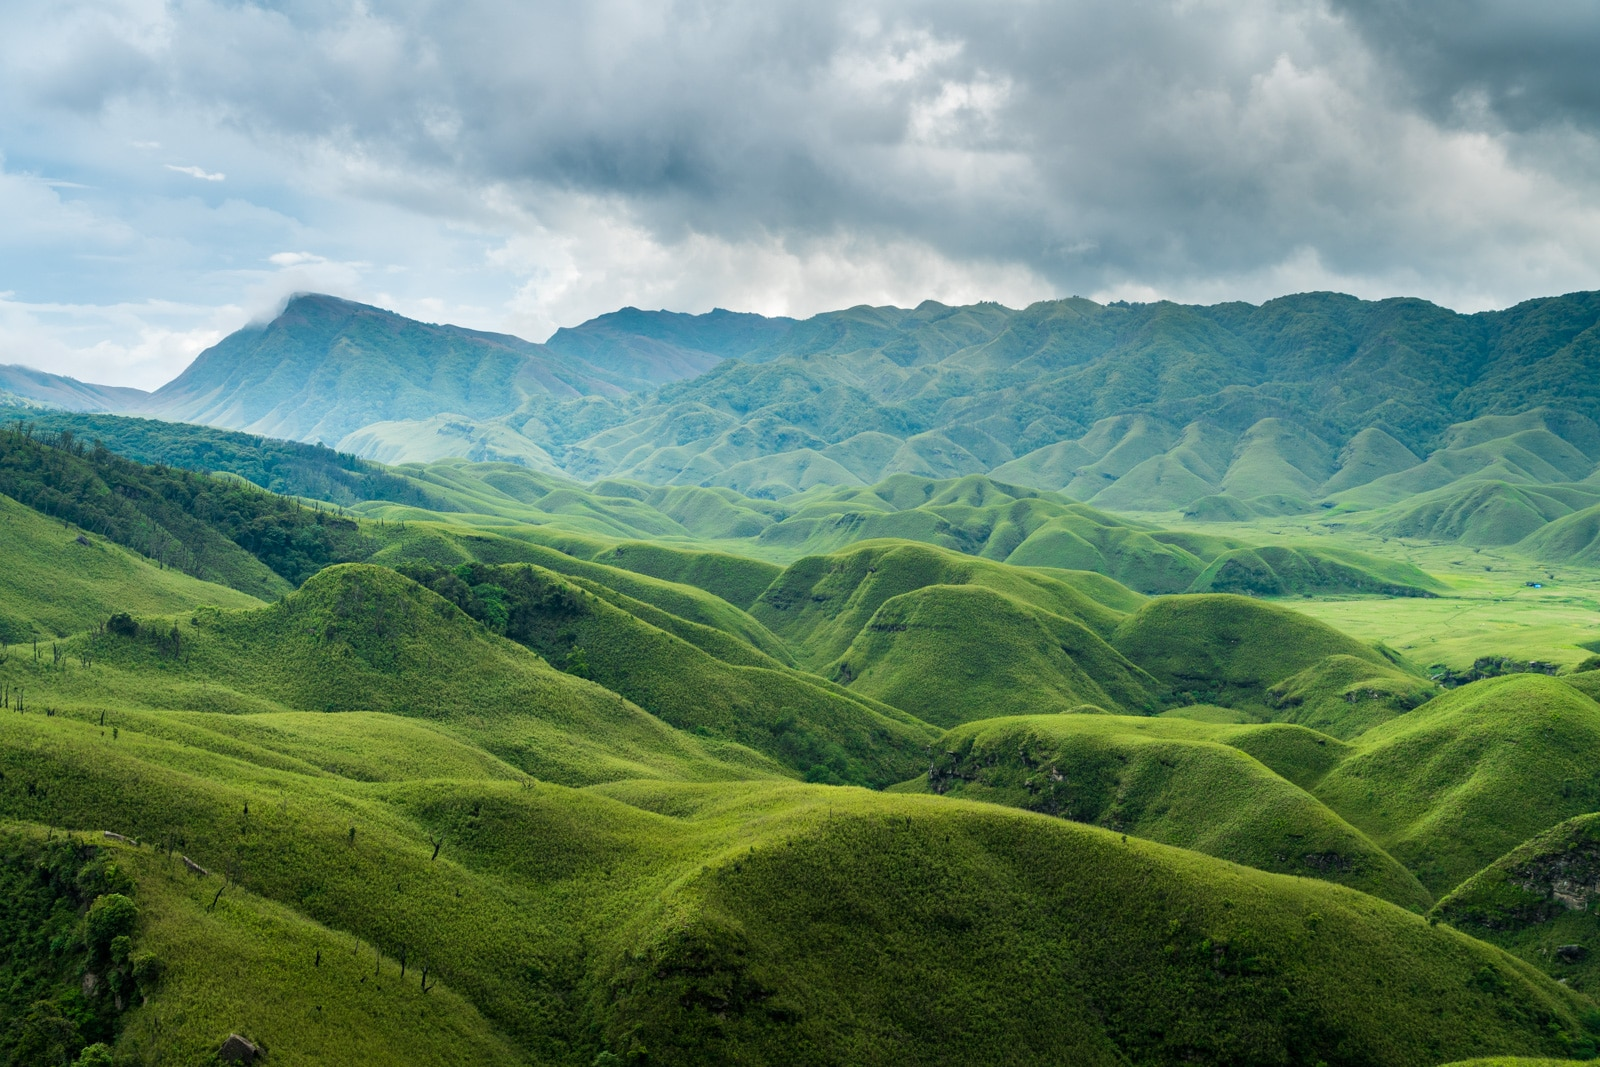 How to get to Dzukou Valley, Nagaland